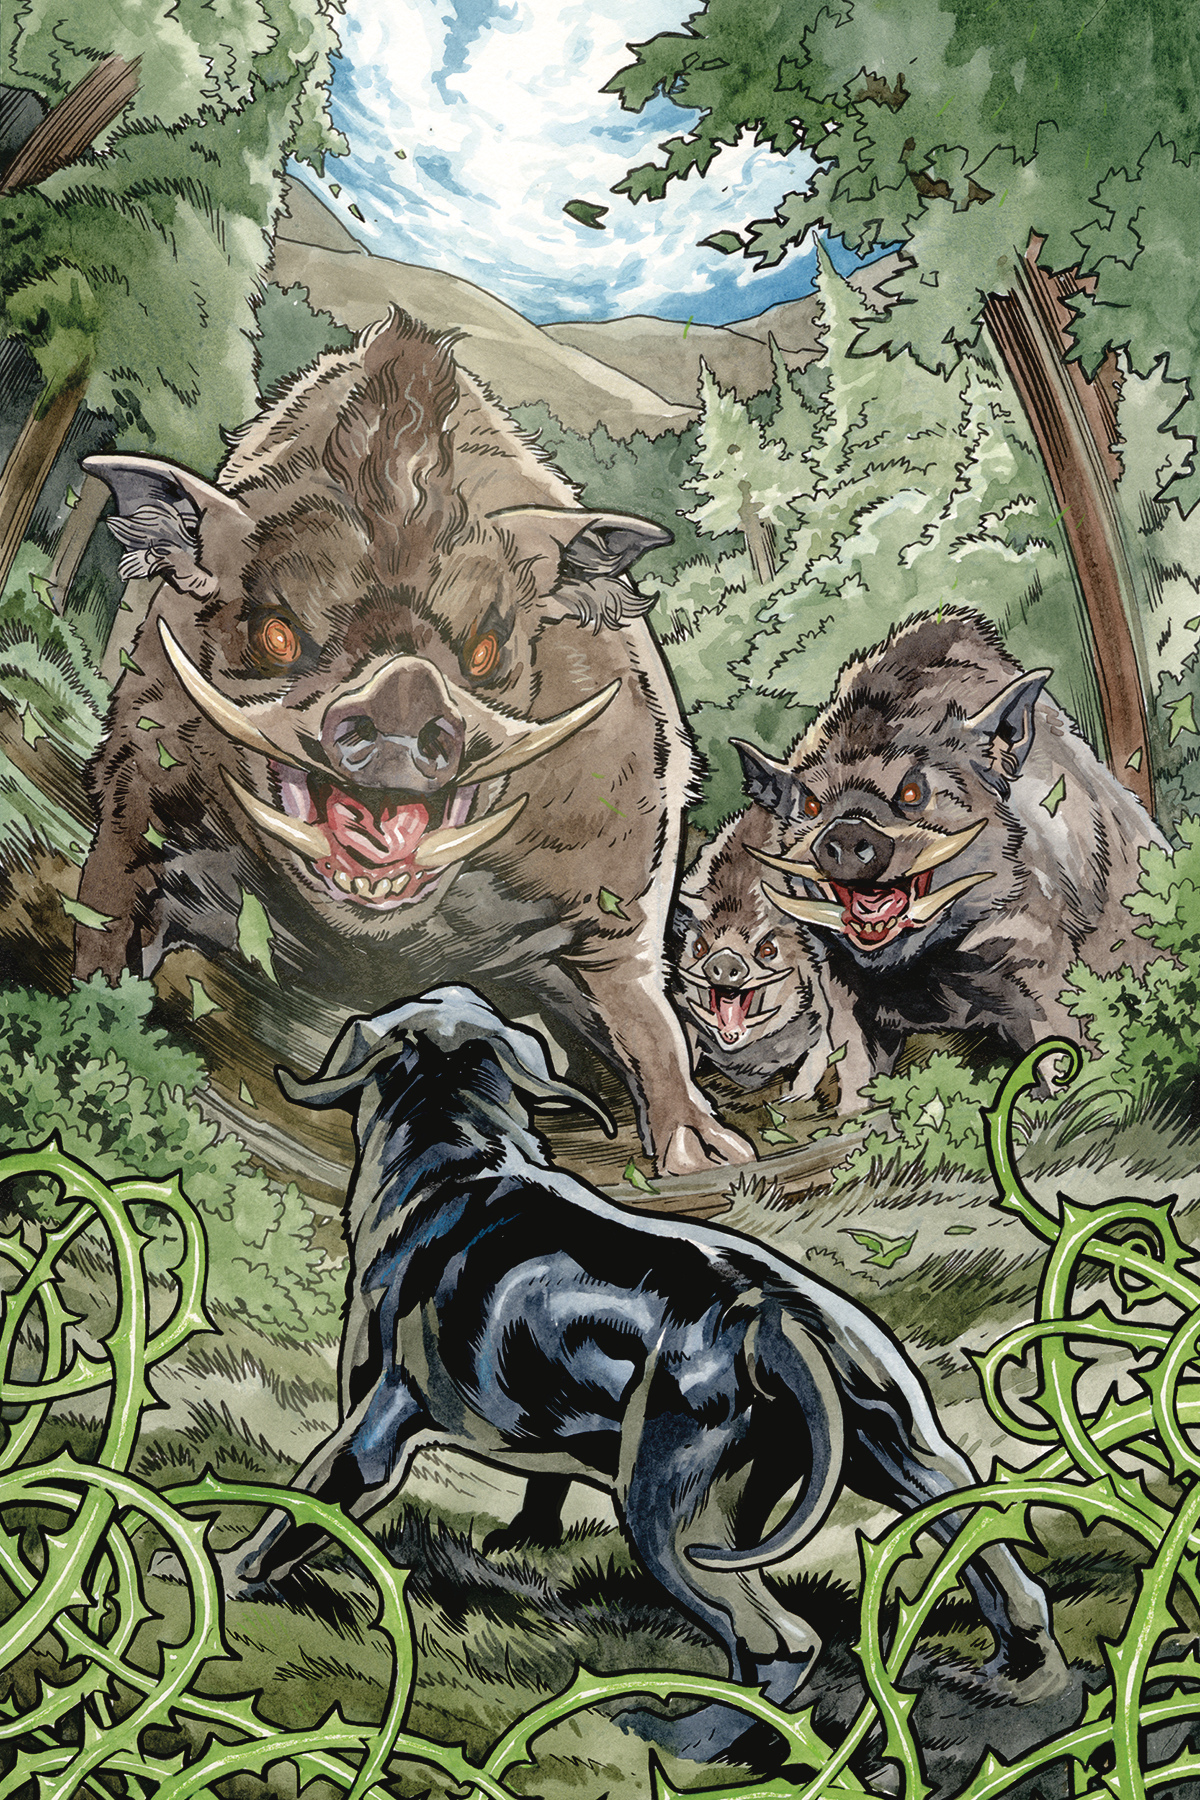 BEASTS OF BURDEN WISE DOGS AND ELDRITCH MEN #3 (OF 4) CVR A